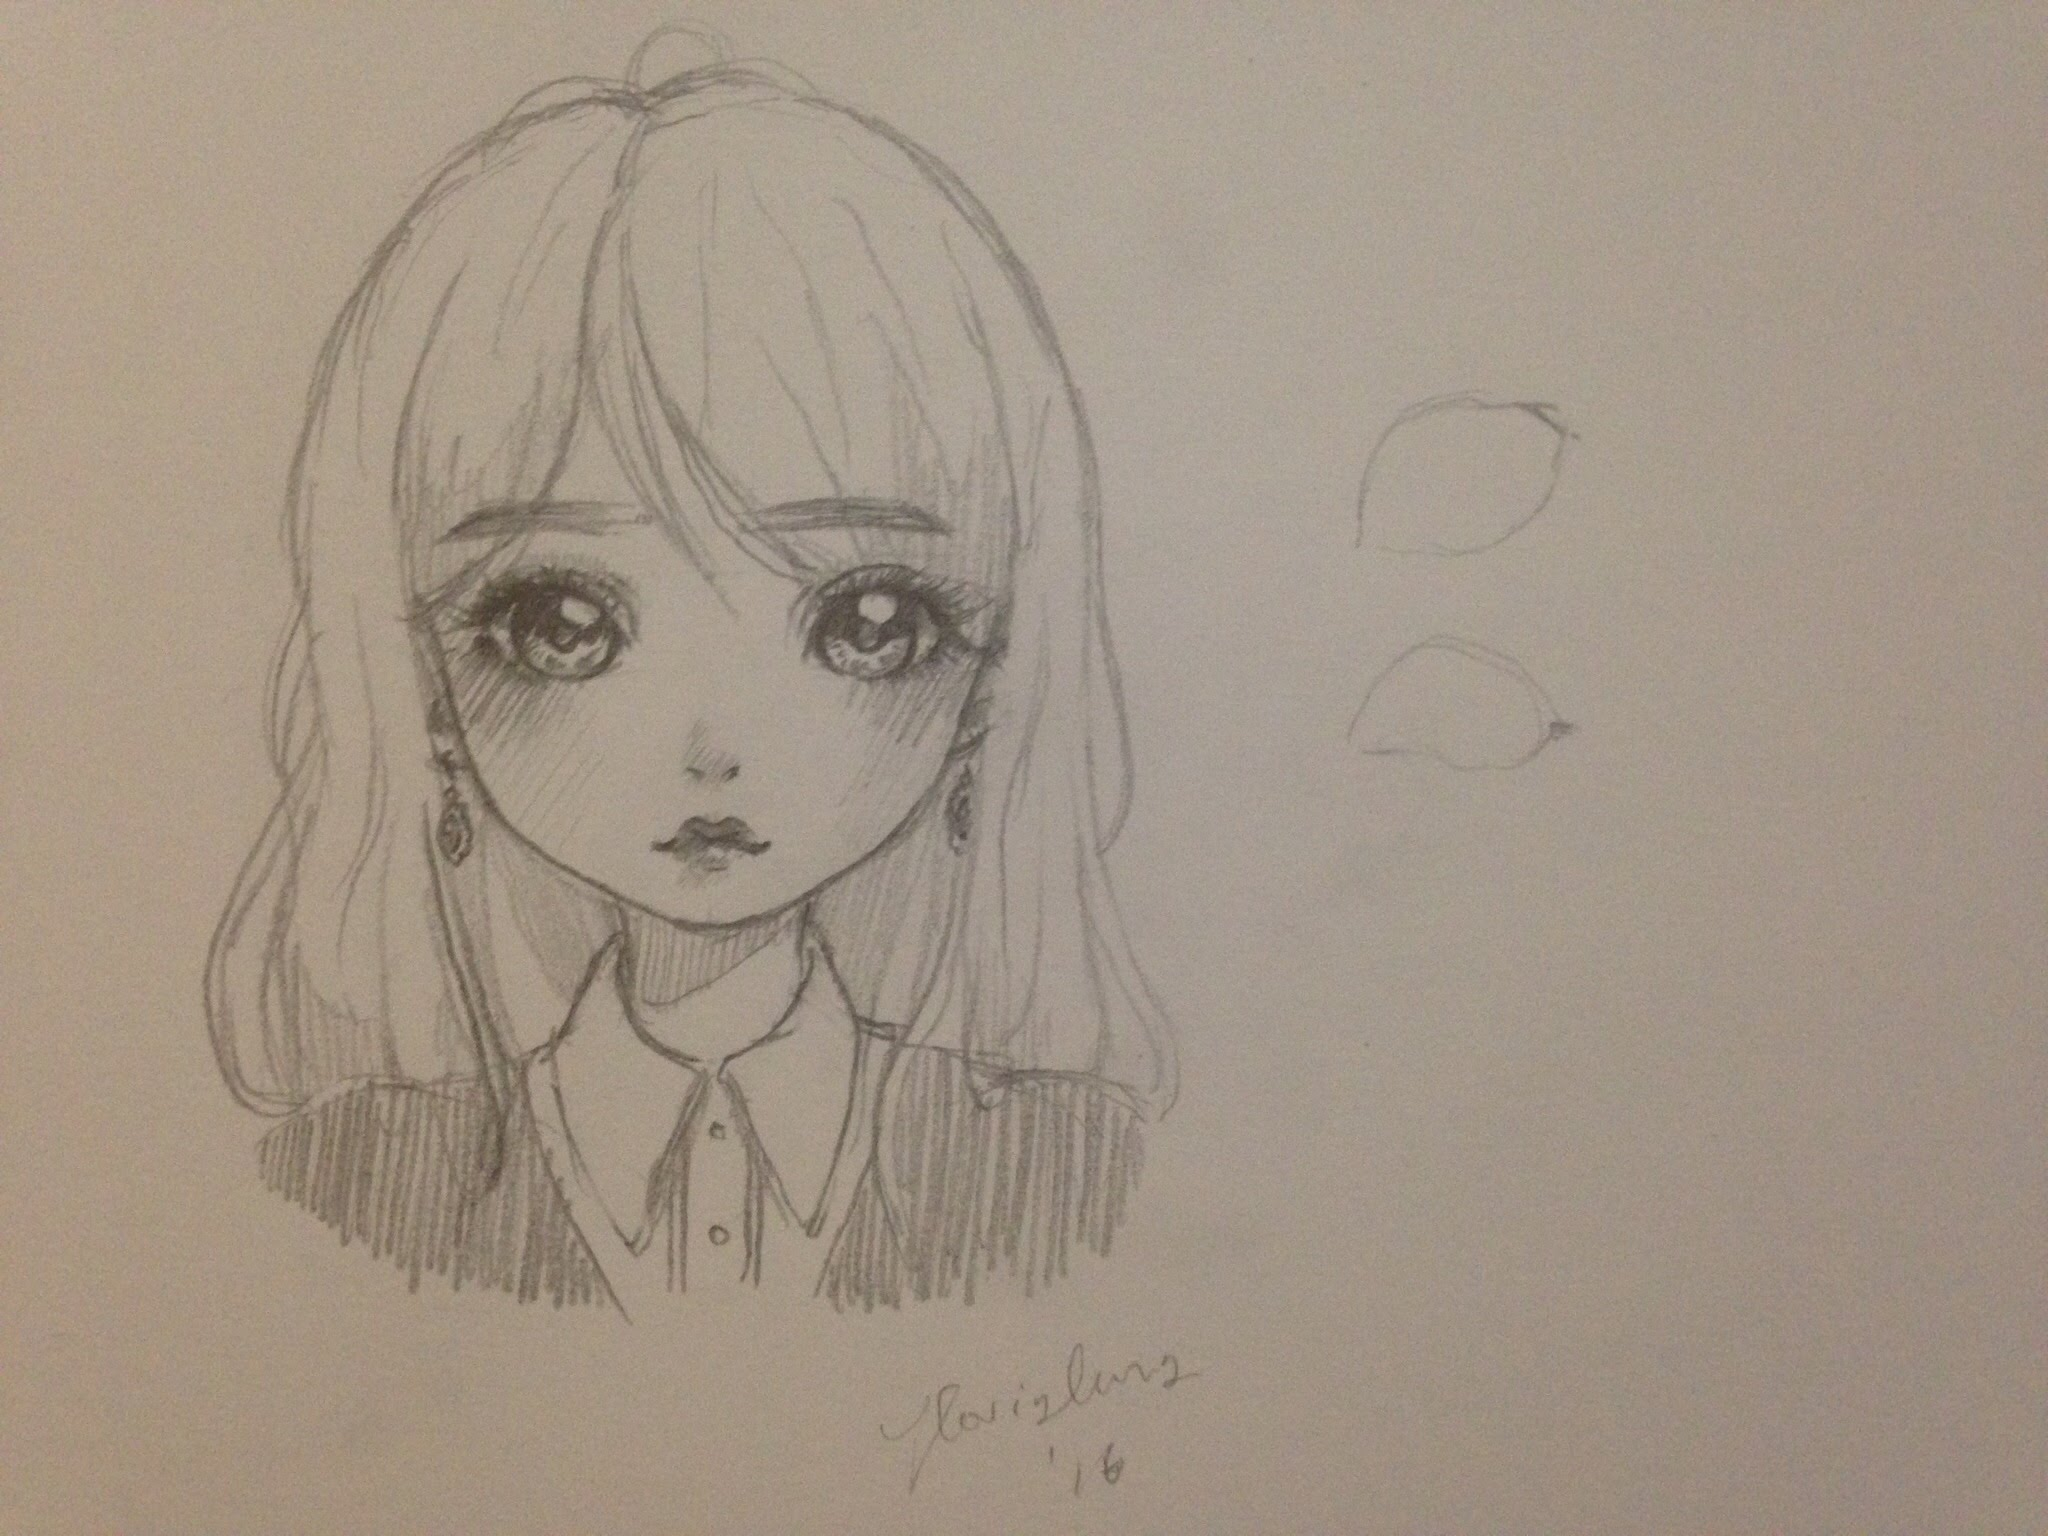 2048x1536 How To Draw A Girl (Mangadoll Style)